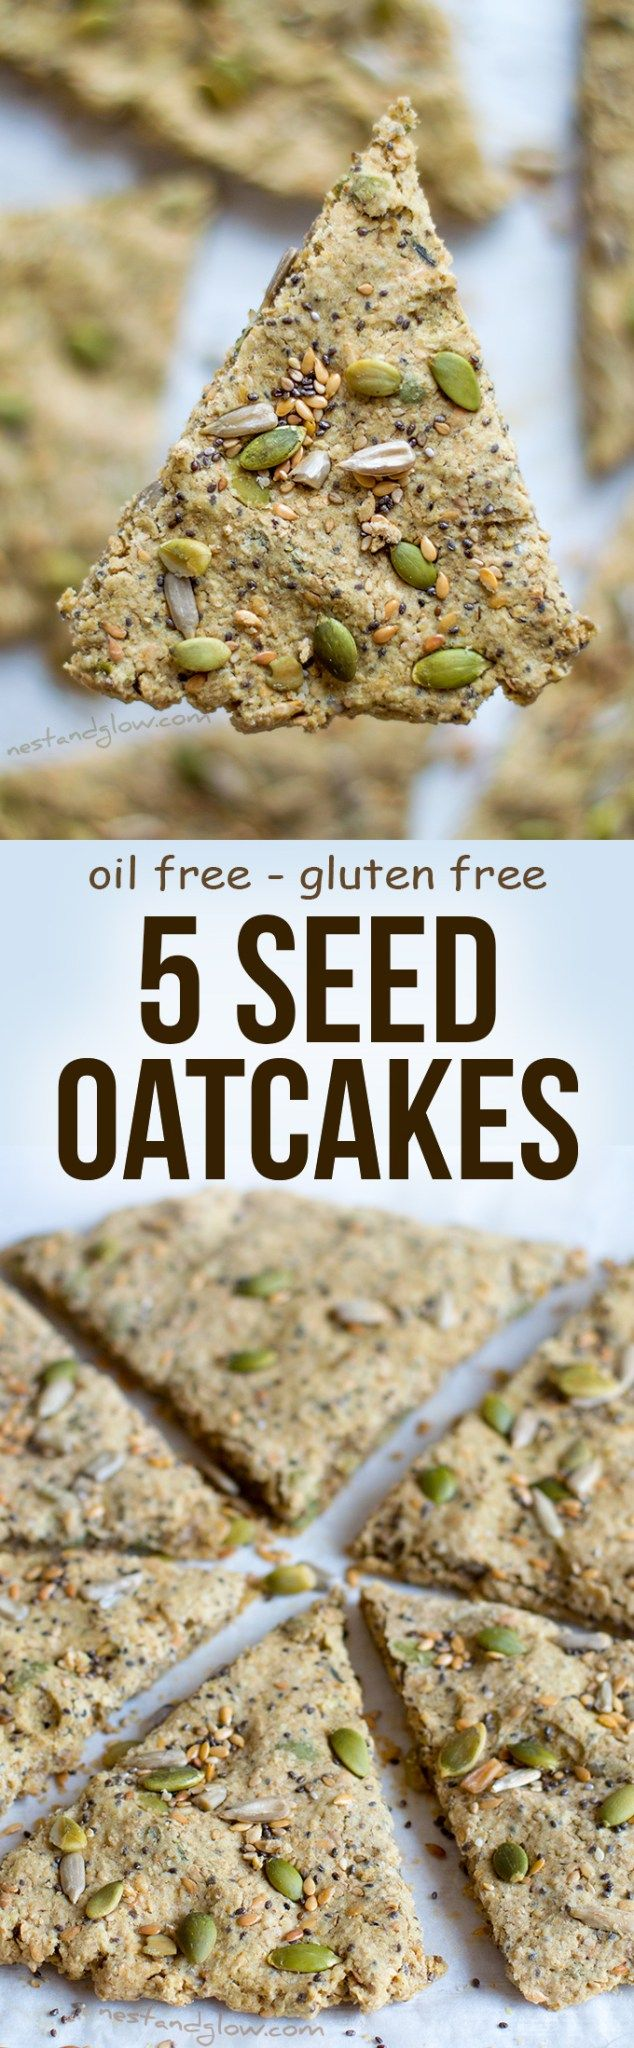 Five Seed Oatcakes Recipe - Palm Oil-free and Gluten-free